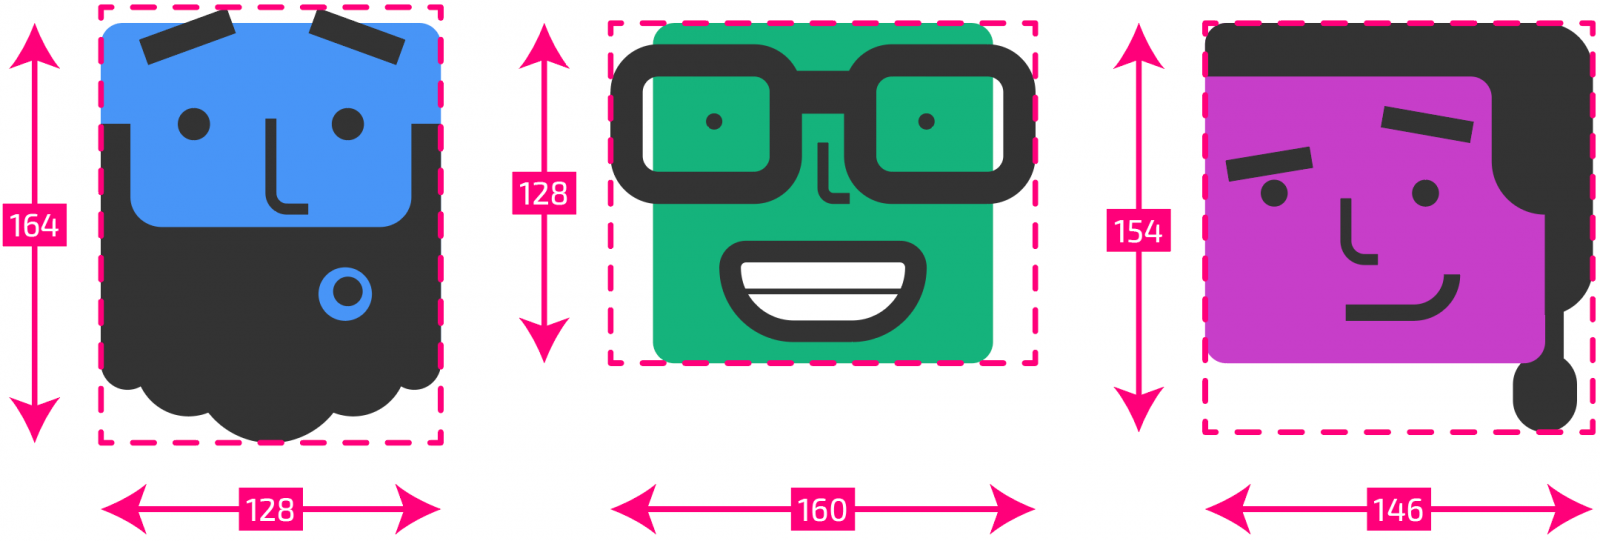 Illustrator artboards with their new measurements overlaid on top. Now, the first avatar is 128 x 164px, the second is 160 x 128px, and the third is 146 x 154px.